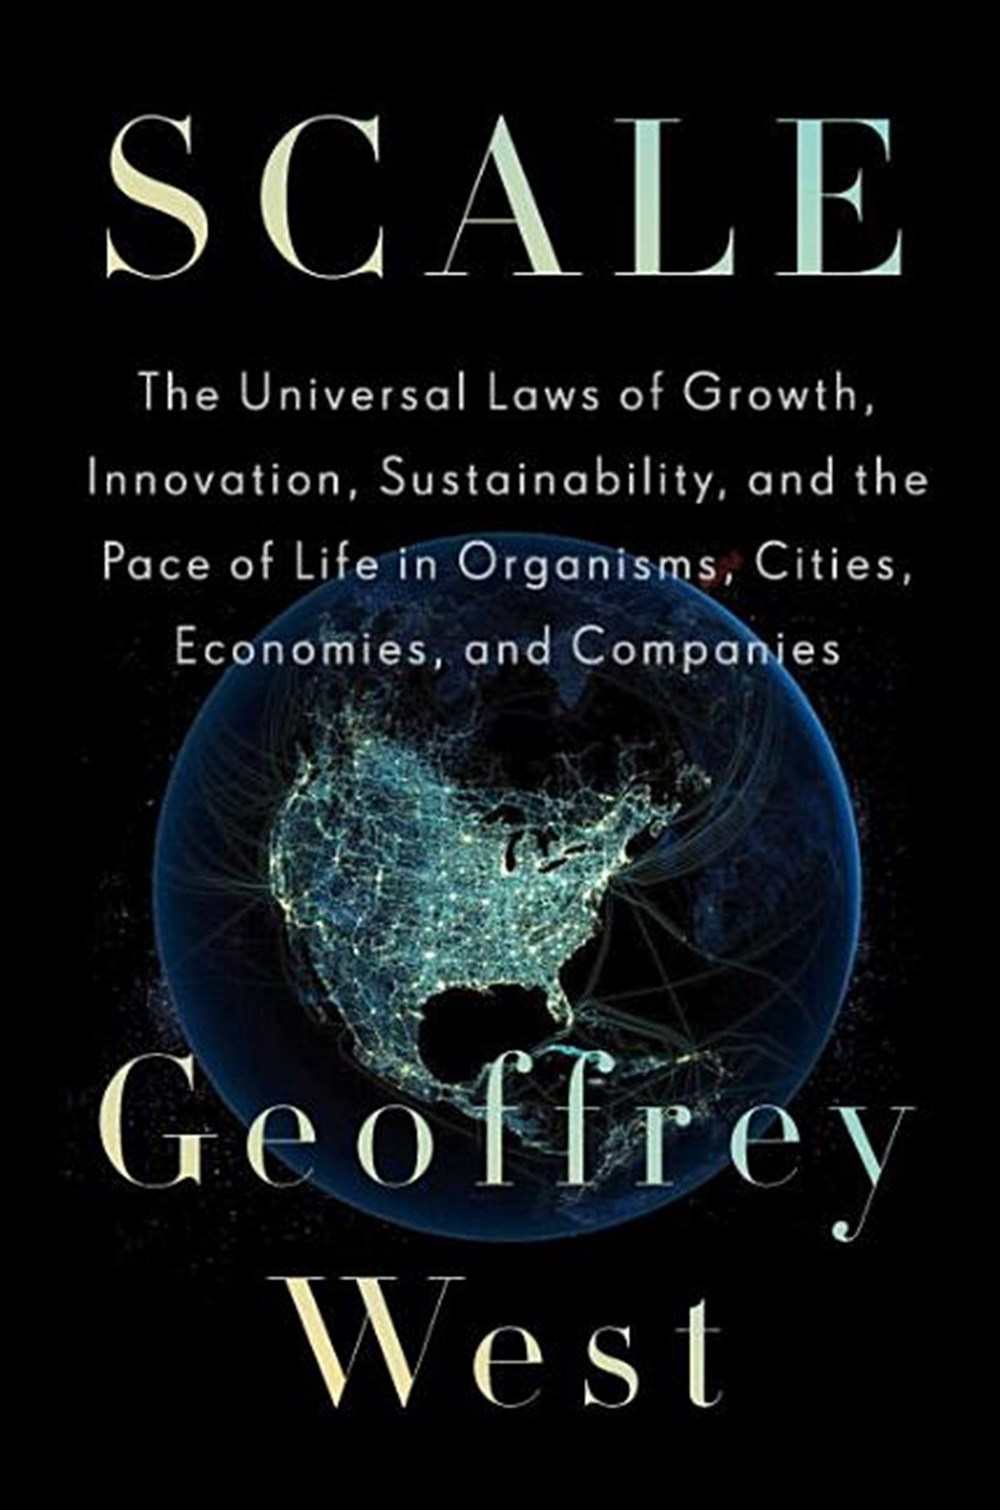 Scale The Universal Laws of Growth, Innovation, Sustainability, and the Pace of Life in Organisms, C